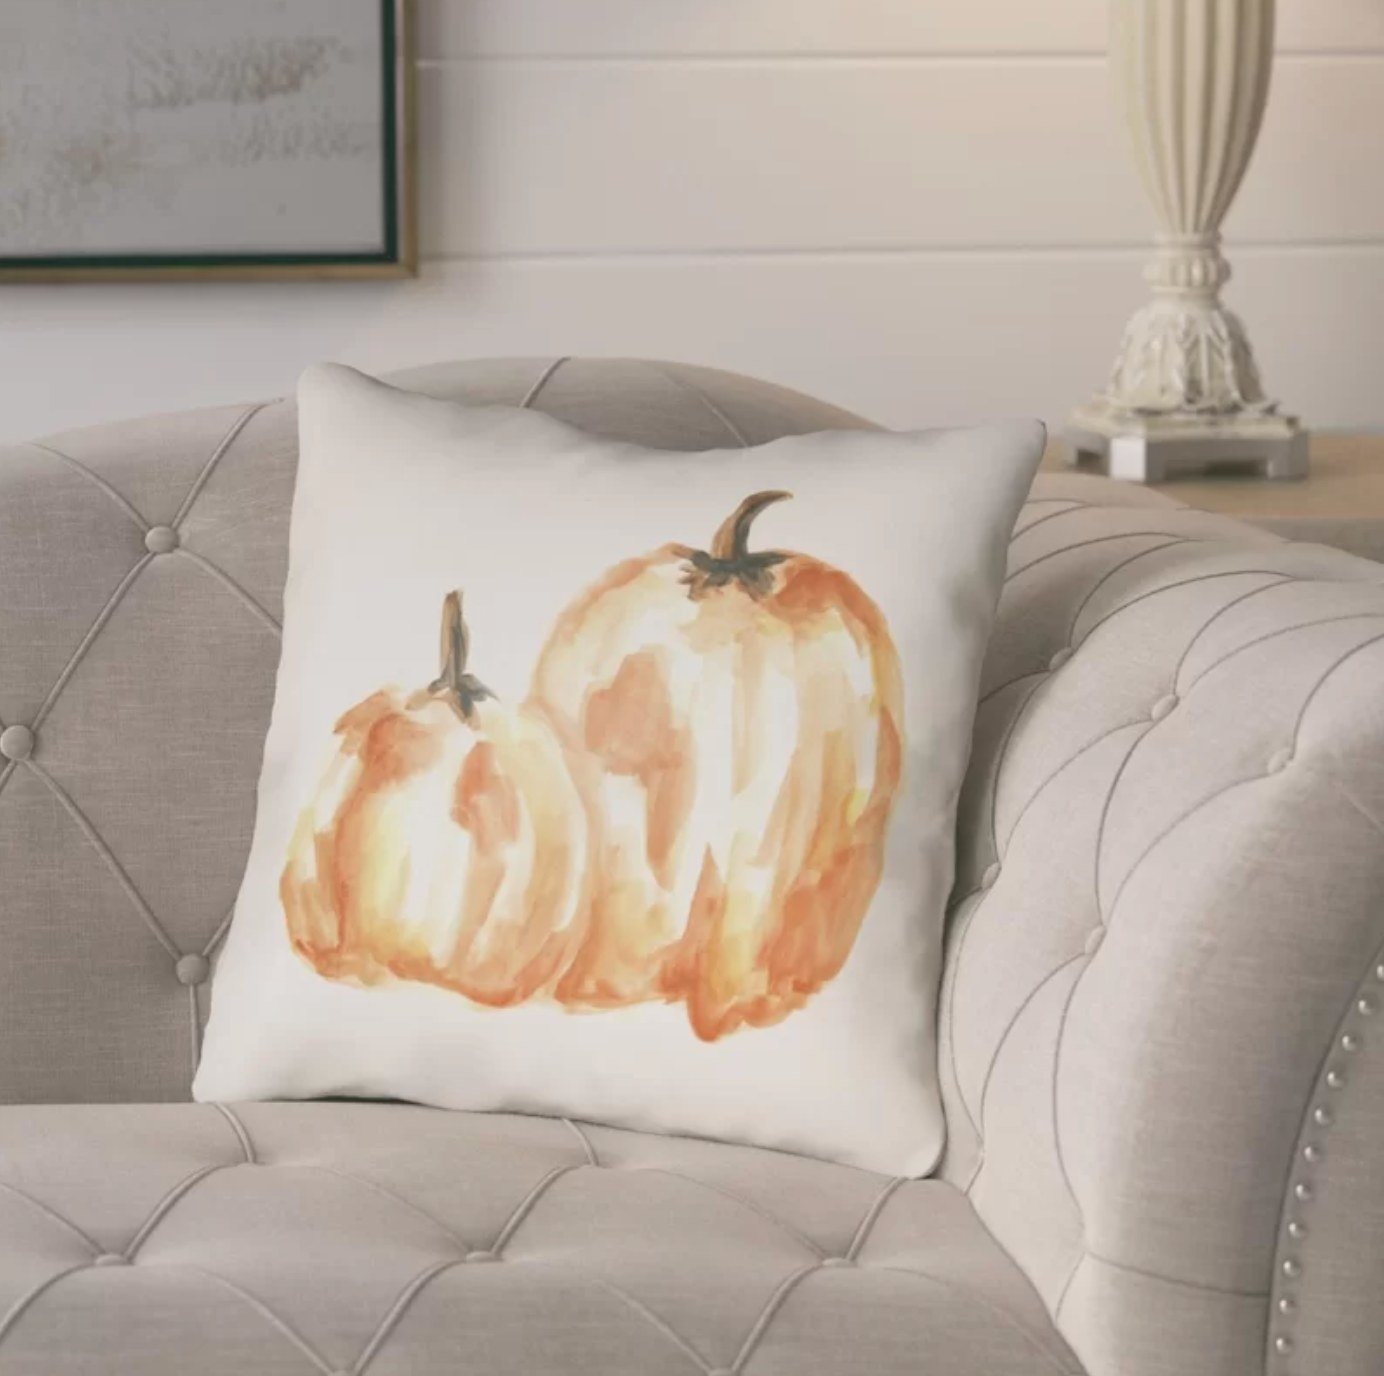 The white throw pillow with an orange pumpkin design